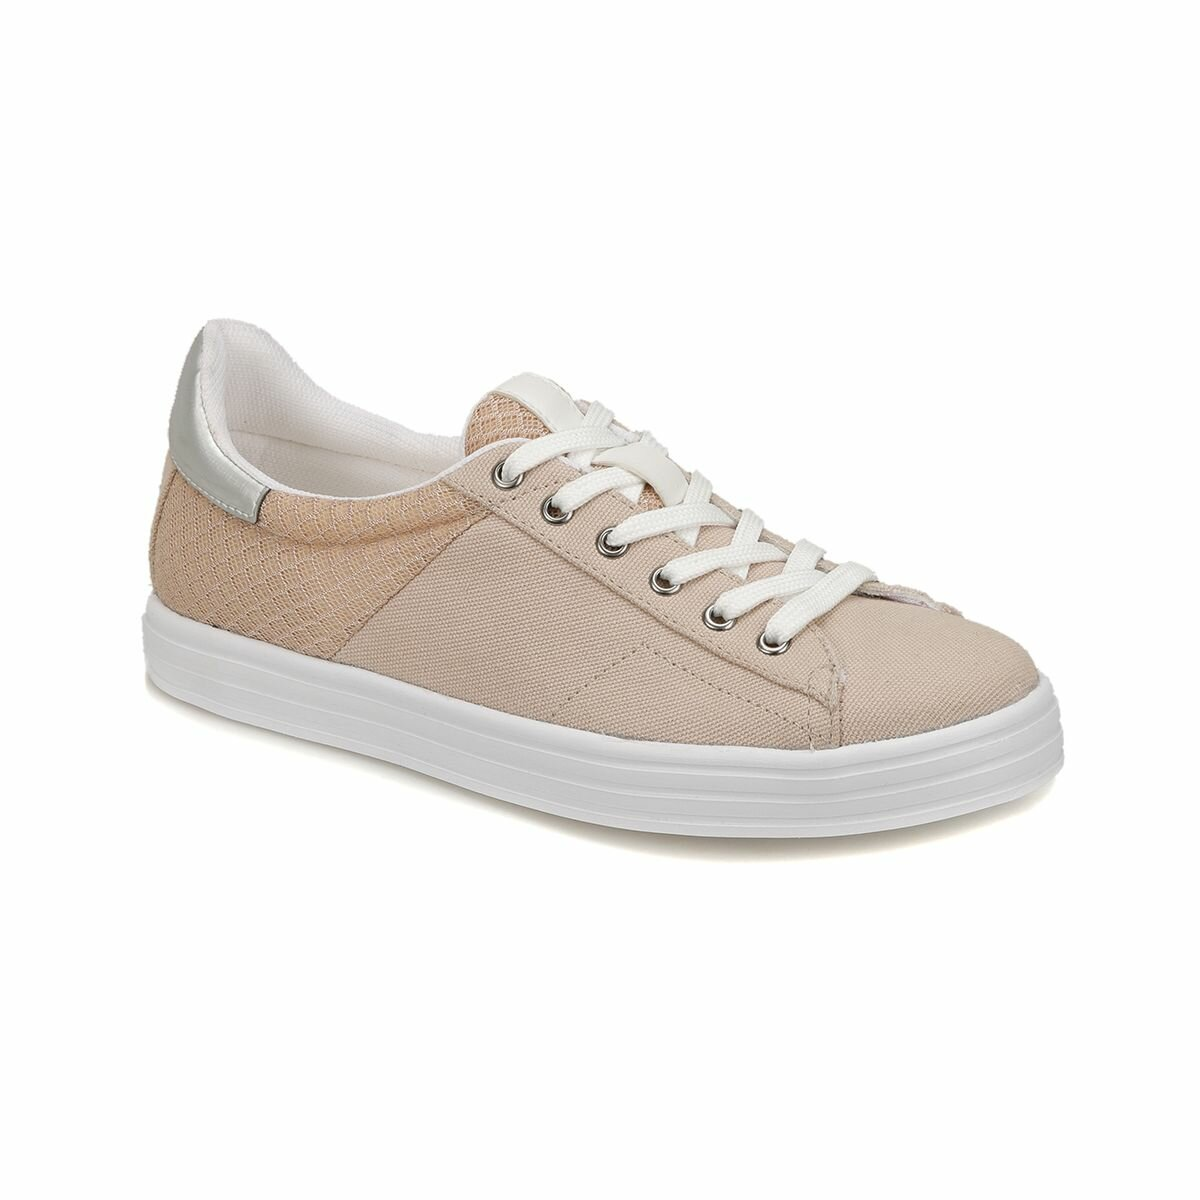 FLO CS18090 Light Pink Women 'S Sneaker Shoes Art Bella